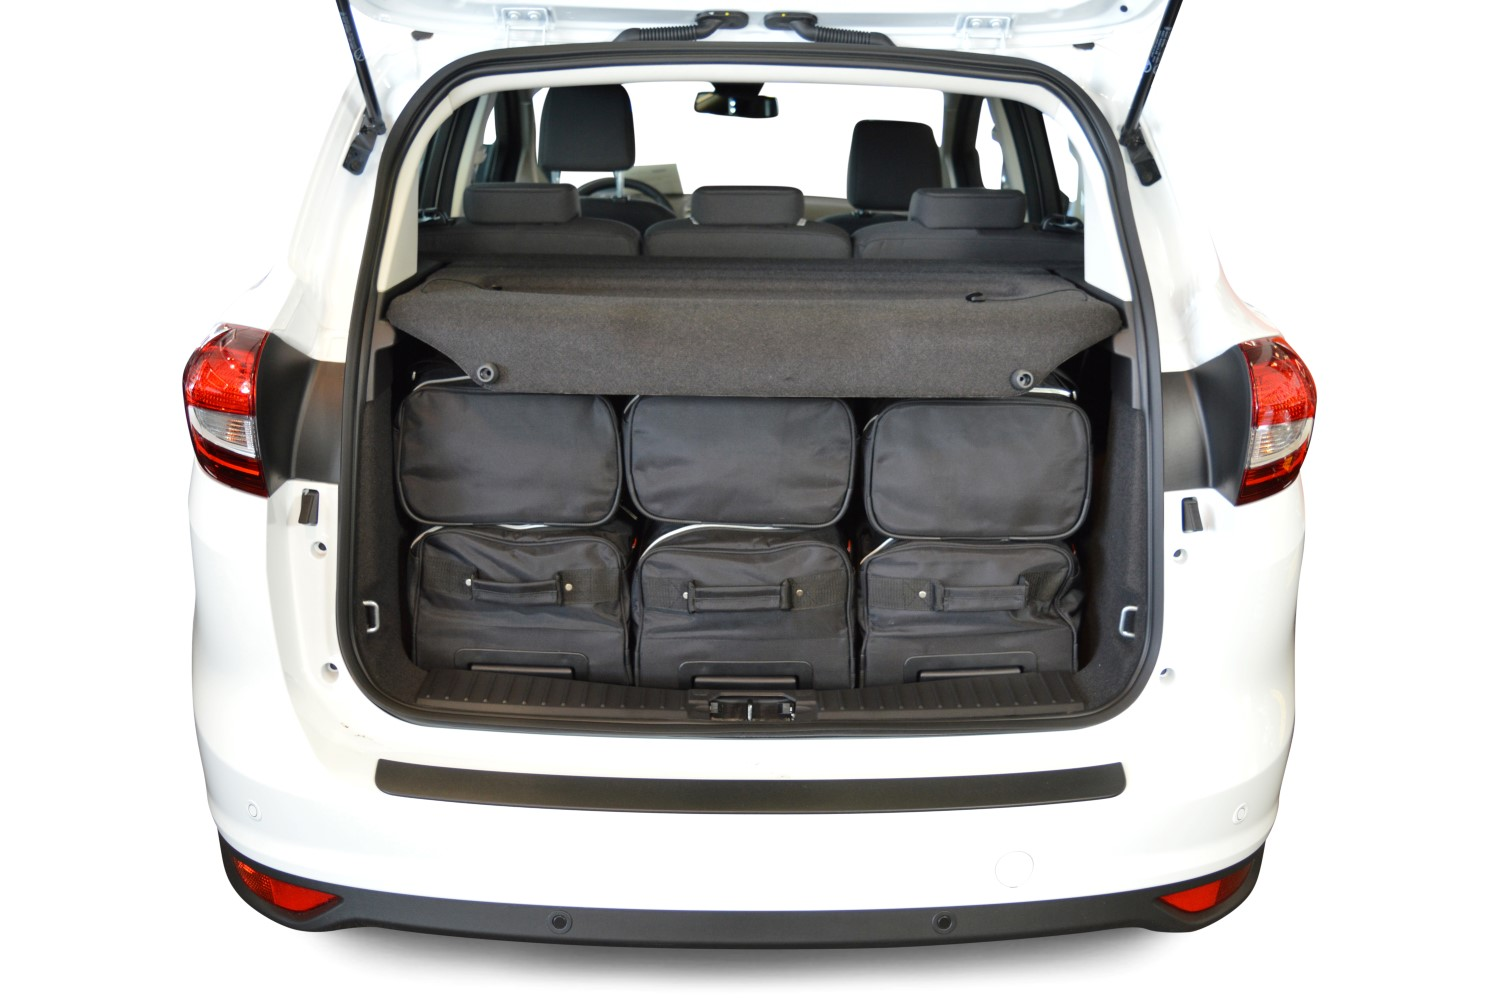 c max ii 2010 heden ford c max 2010 heden car bags reistassenset. Black Bedroom Furniture Sets. Home Design Ideas